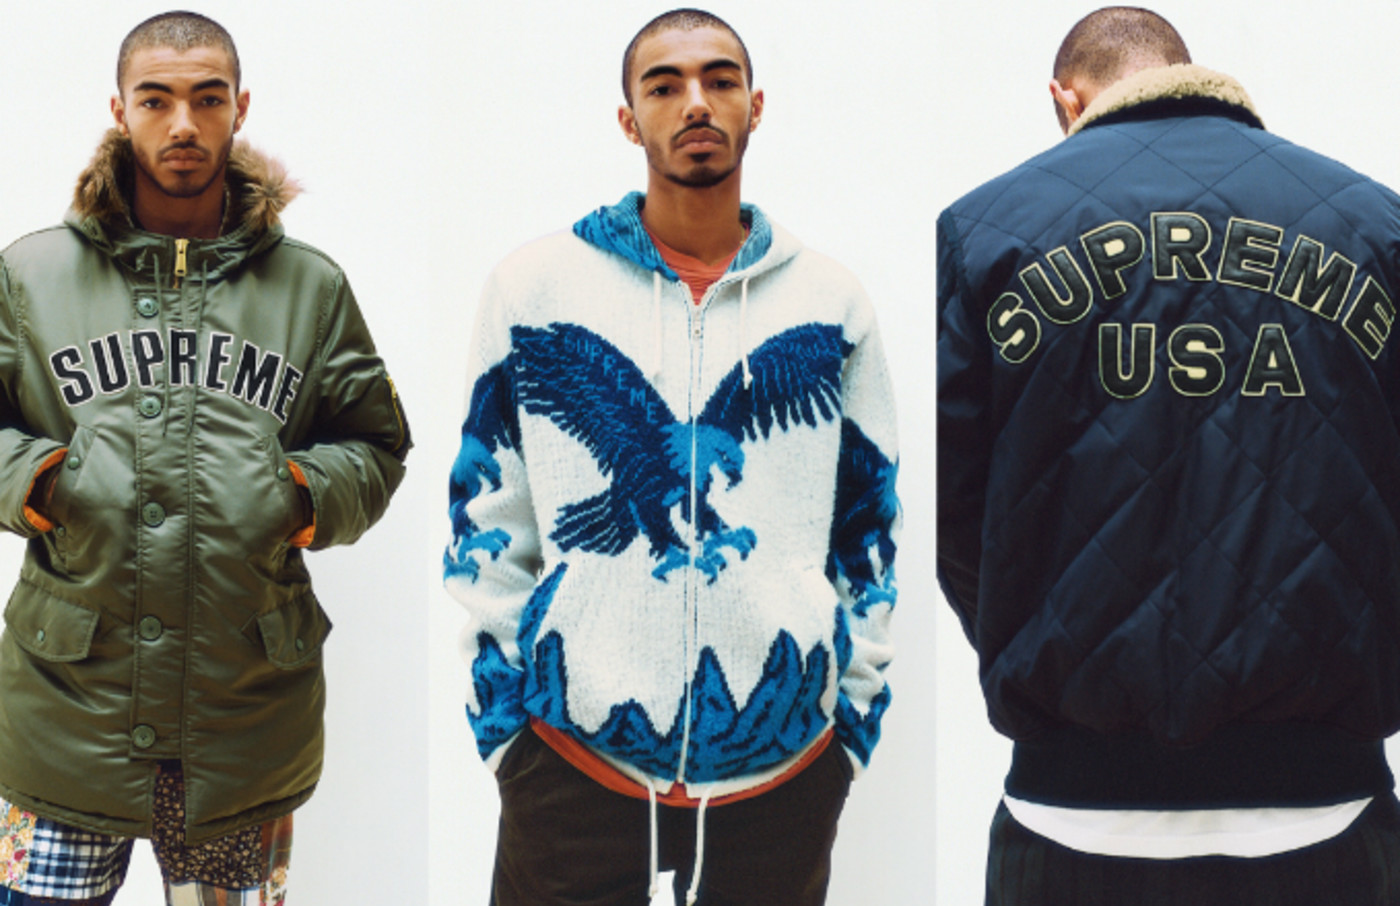 Supreme's Fall Winter 2016 lookbook